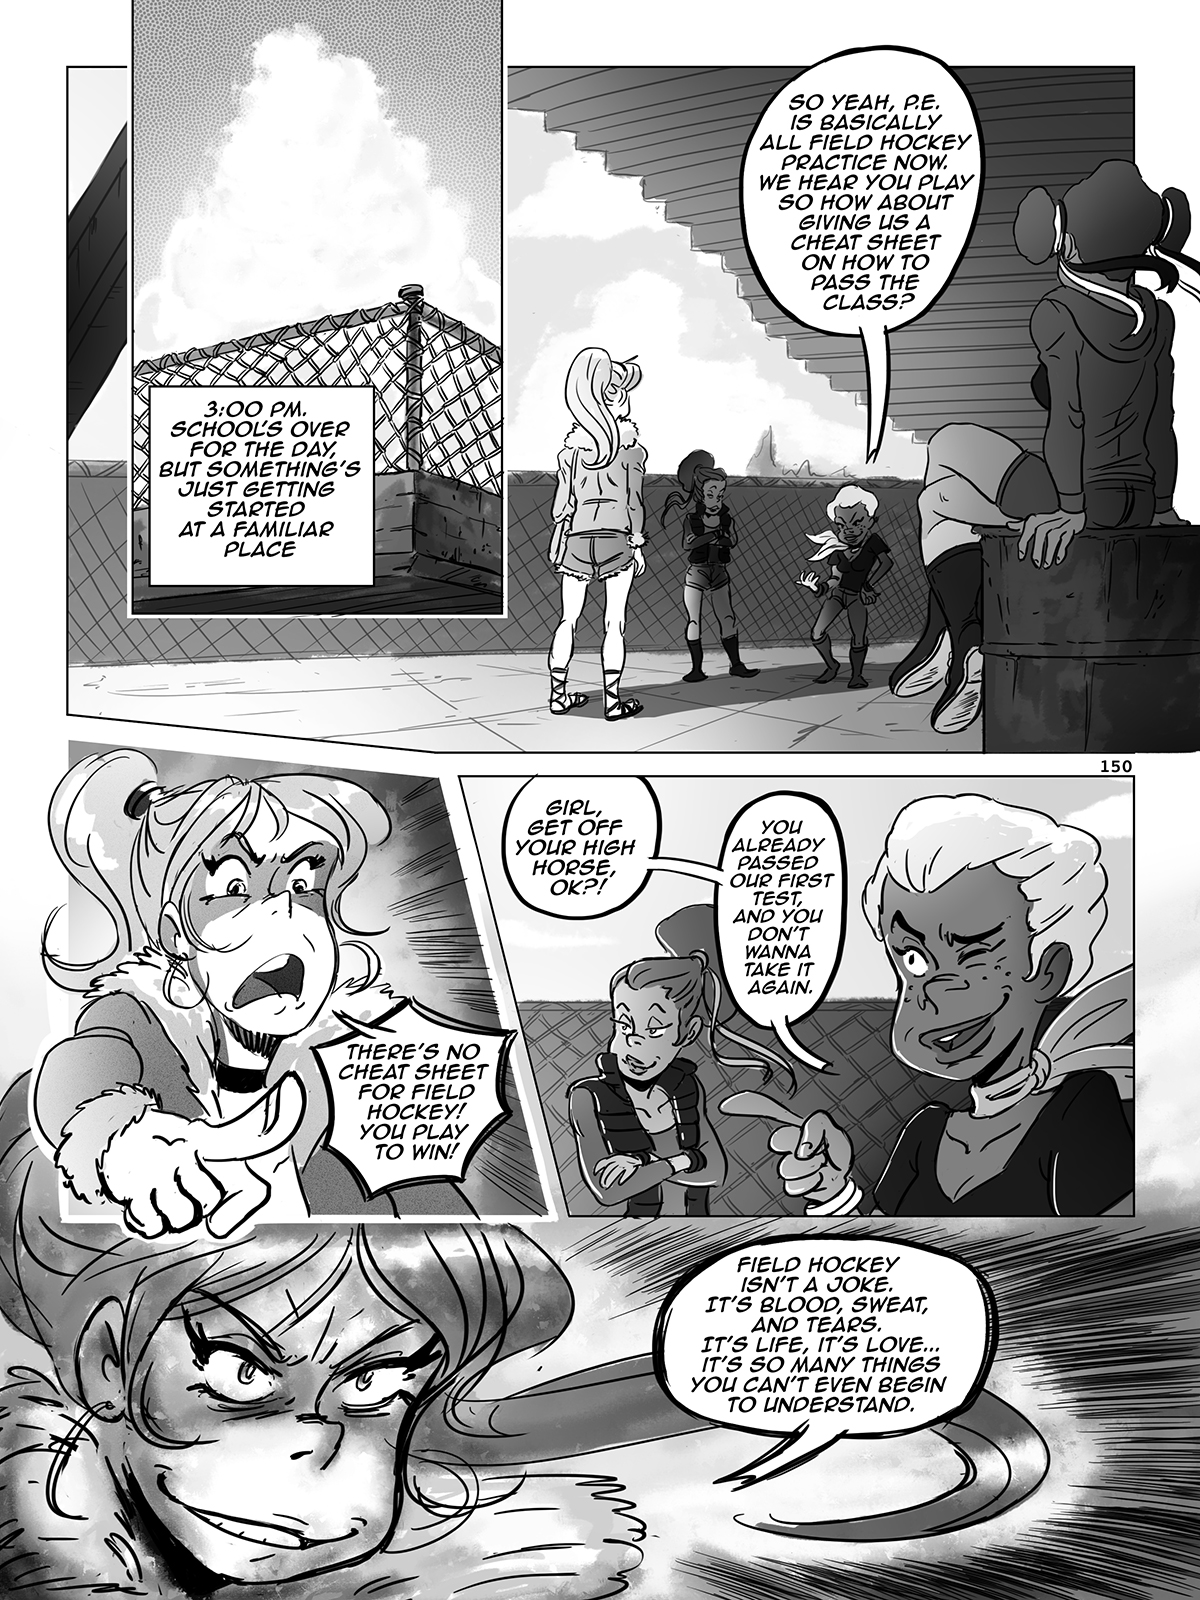 Hockey, Love, & GUTS! – Chapter 7 – Page 150